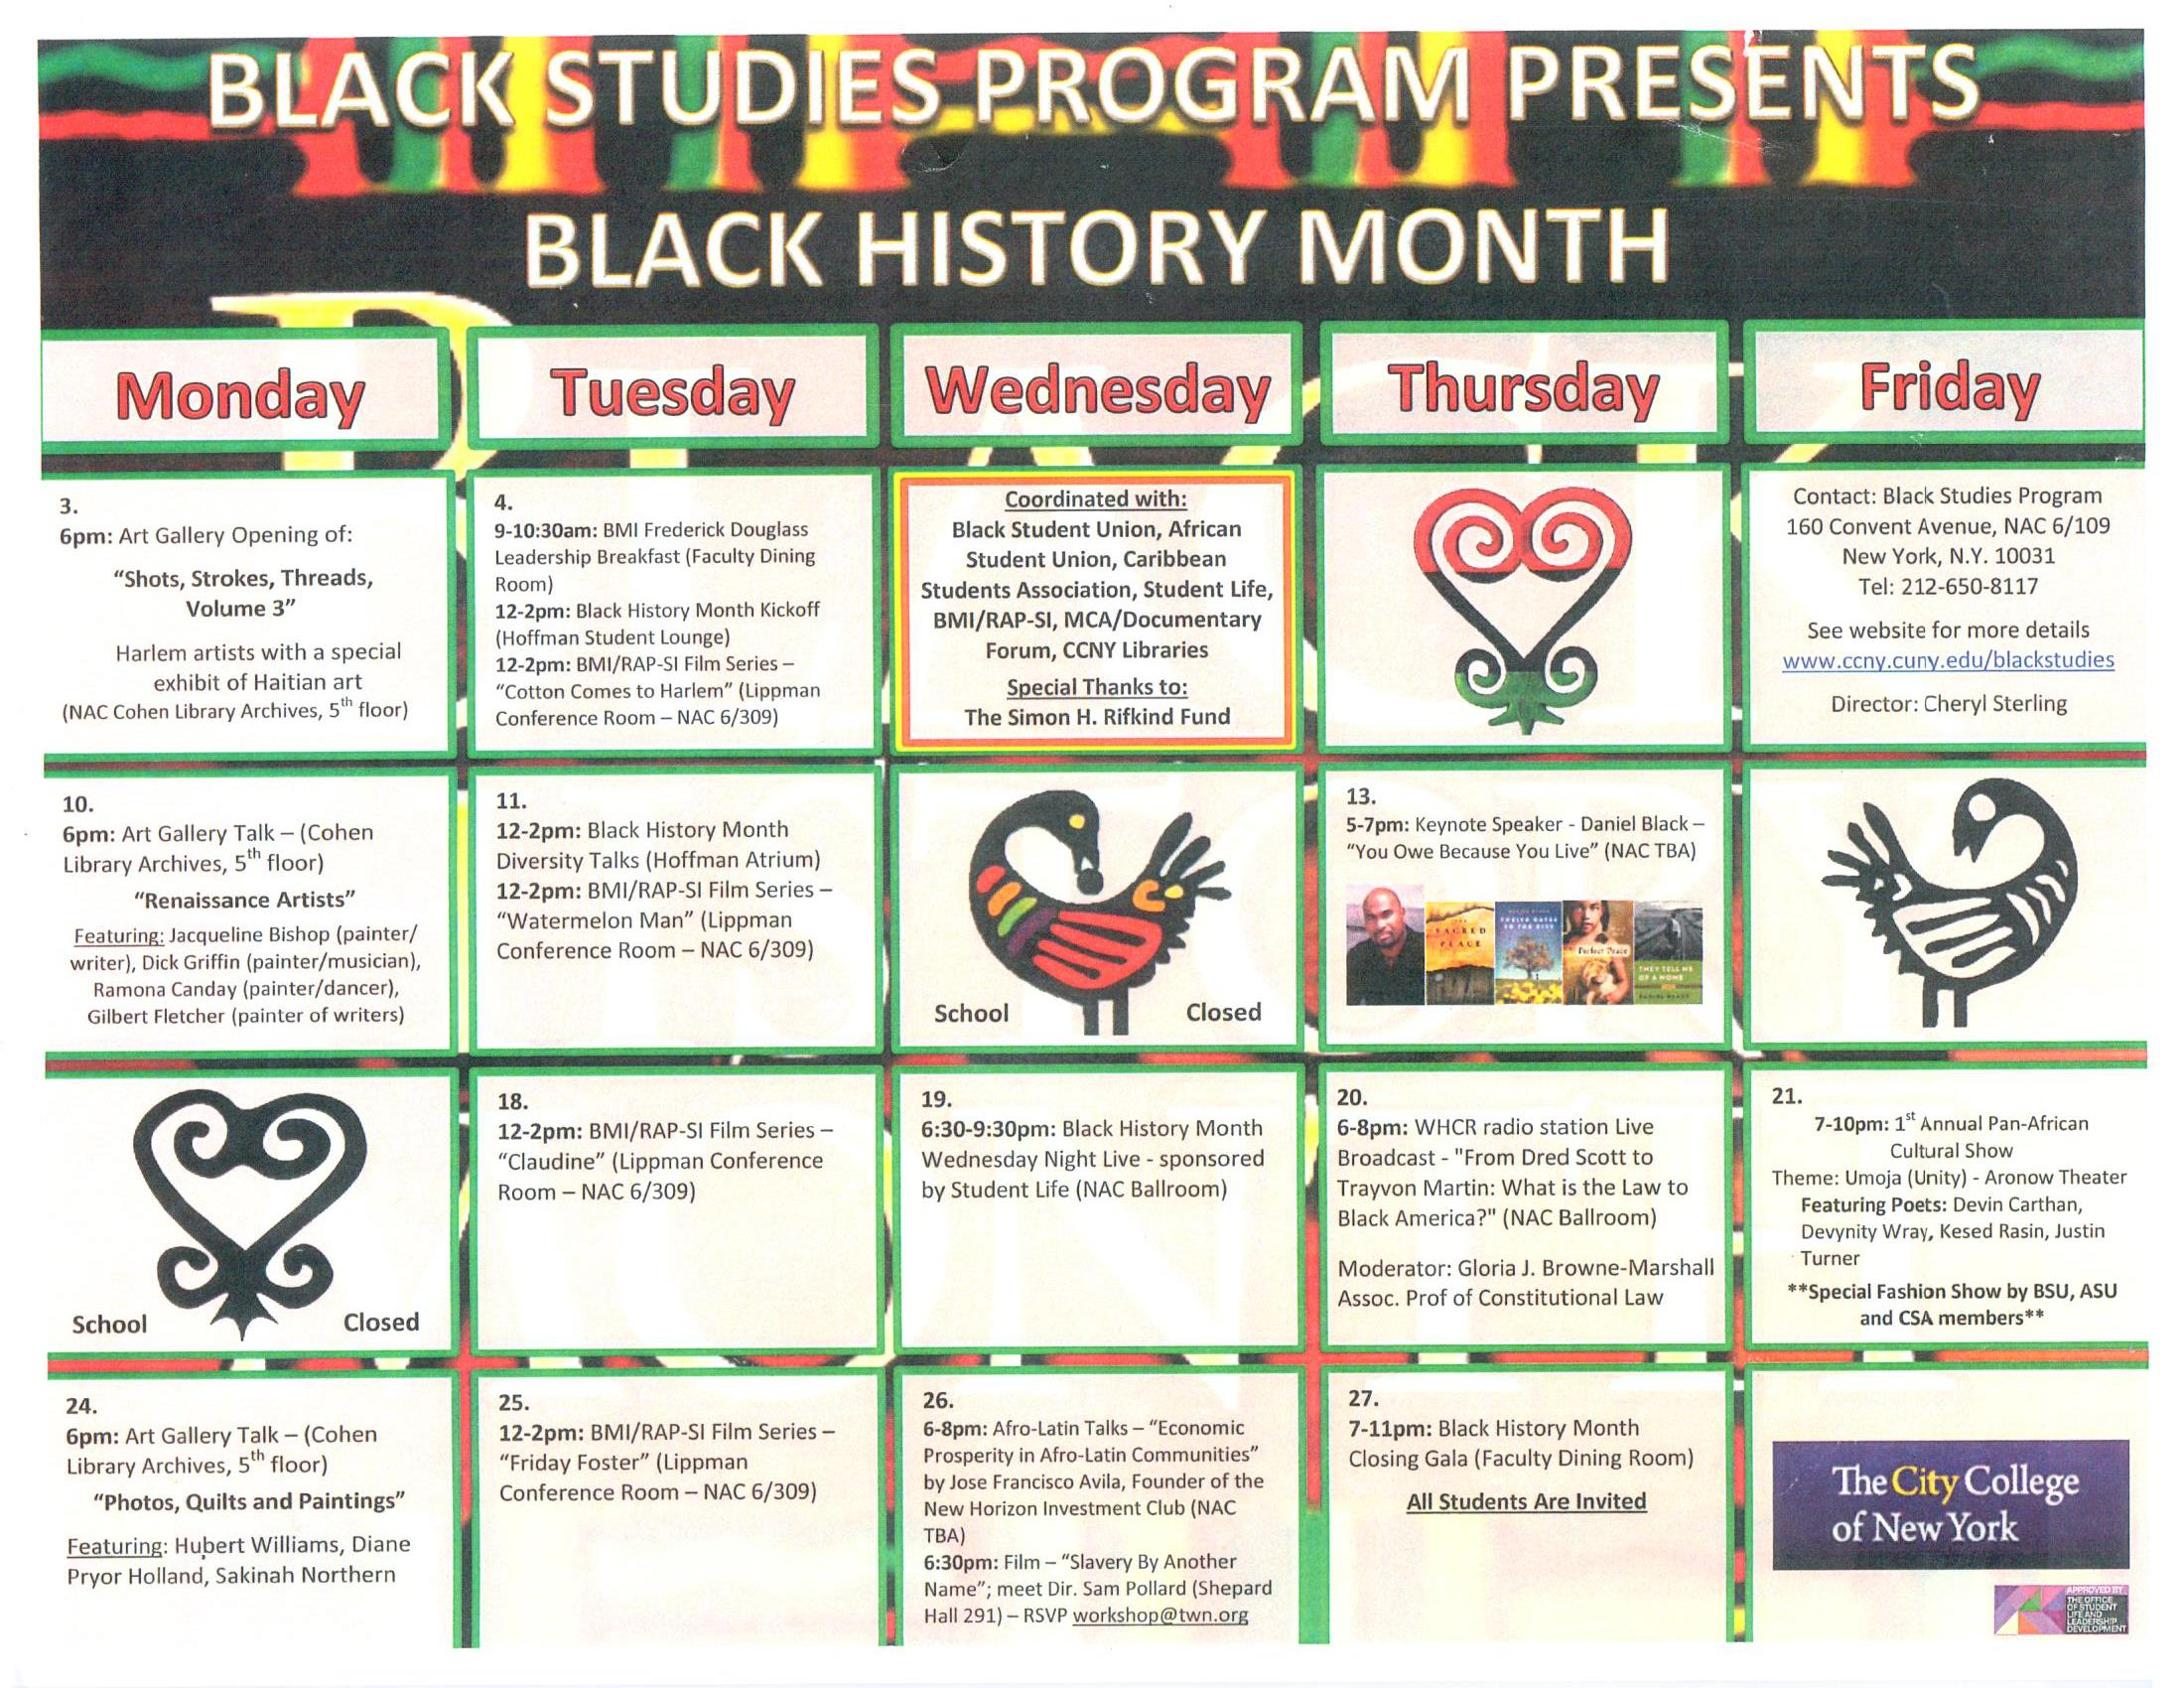 the 2014 Black History month calendar.